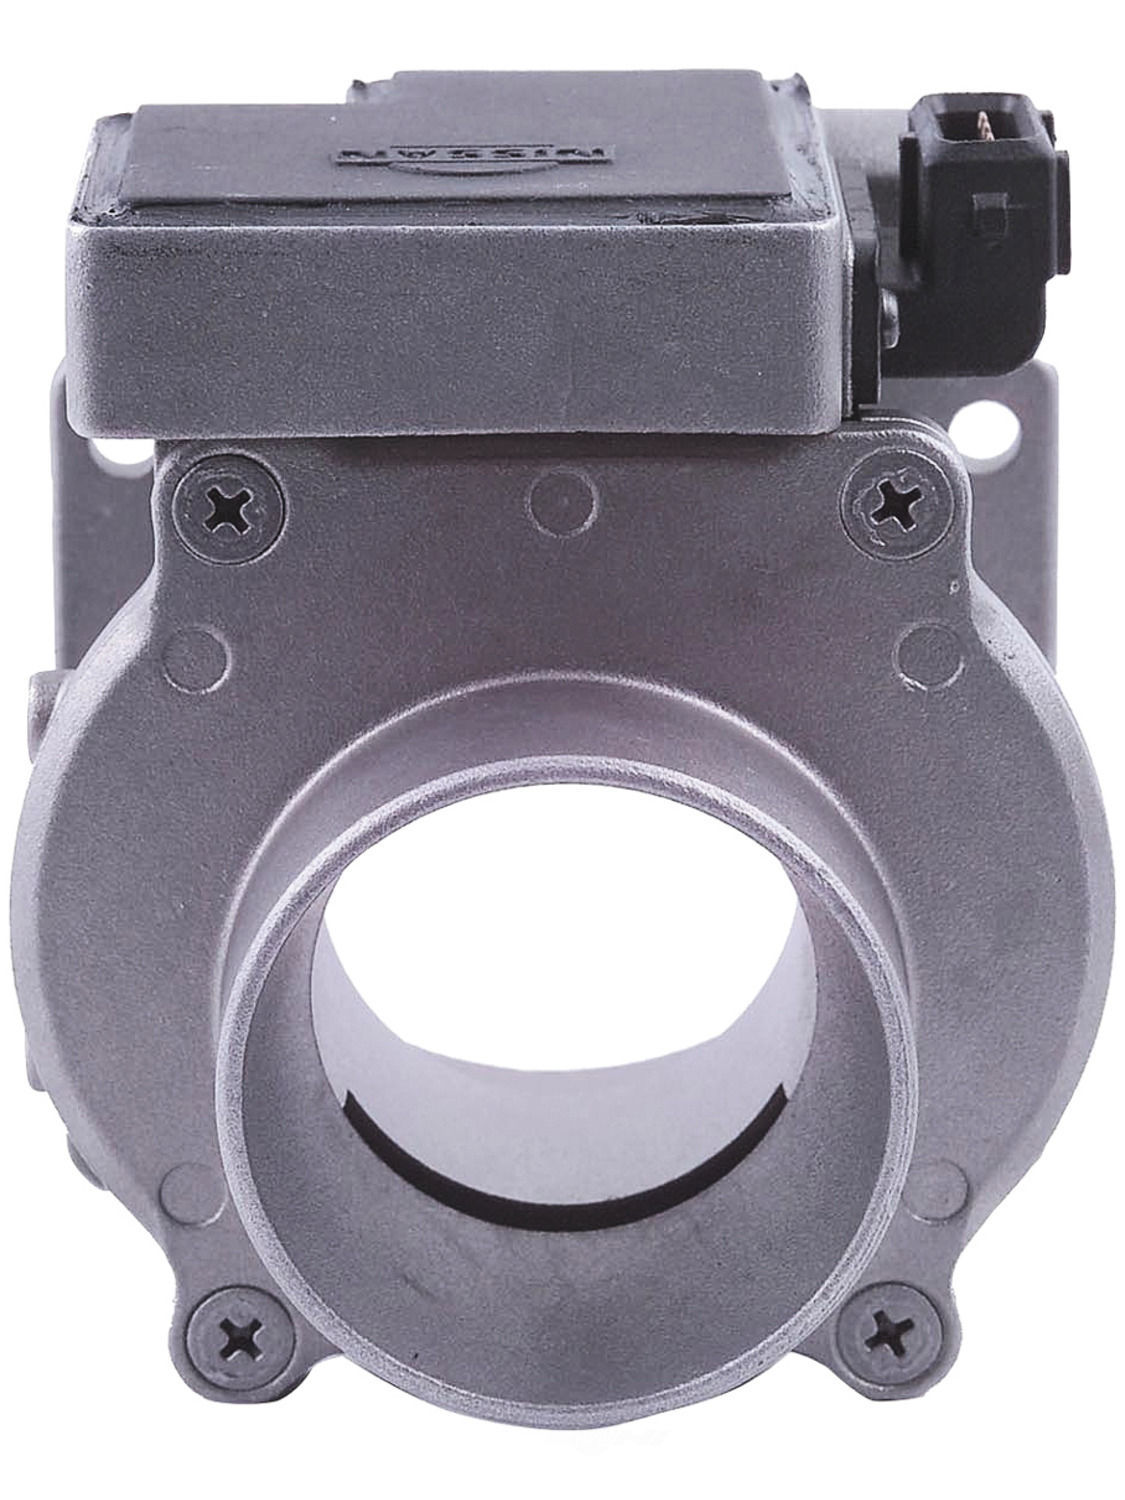 CARDONE REMAN - Mass Air Flow Sensor - A1C 74-10015